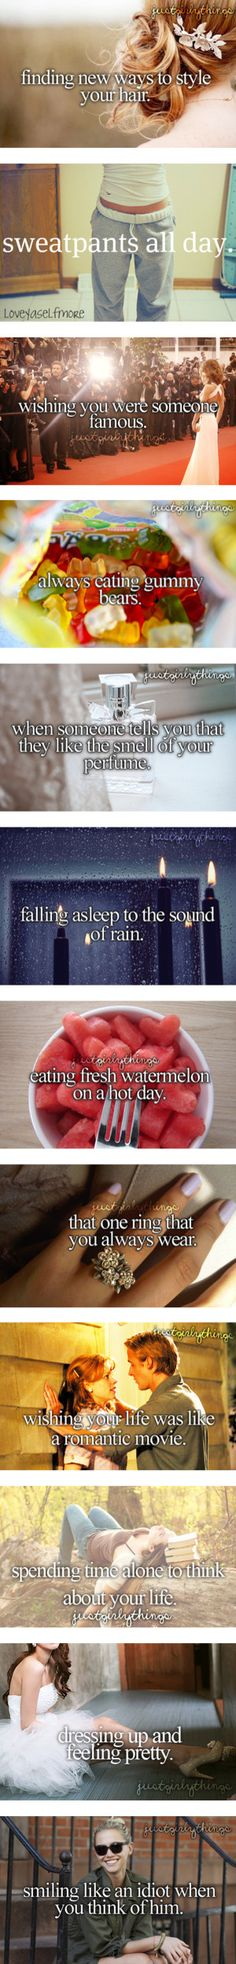 just girly things ♥